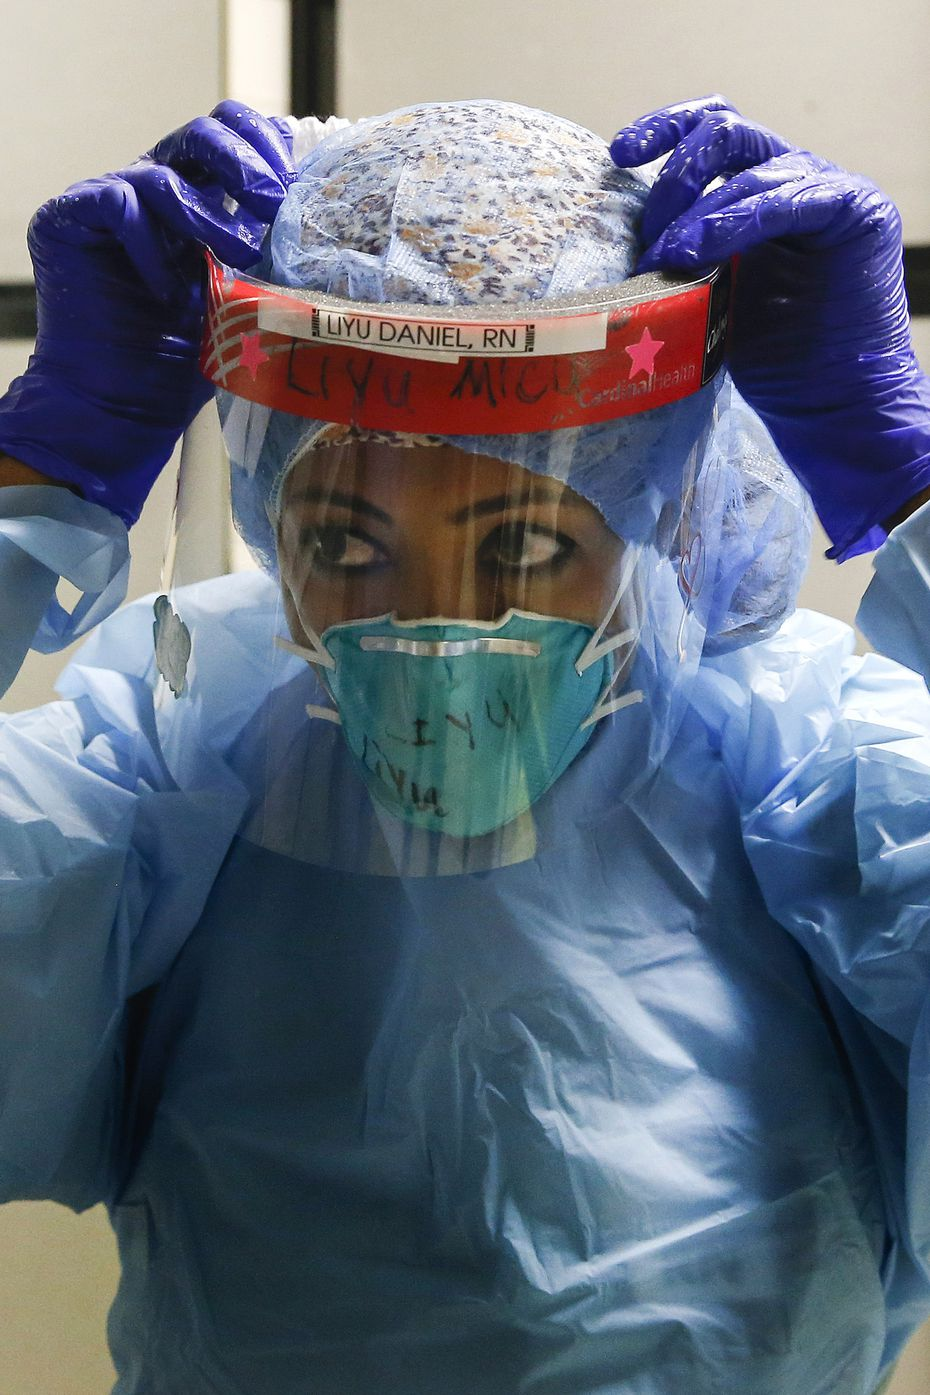 Nurse Liyu Daniel dons personal protective equipment as she prepares to enter the COVID-19 Tactical Care Unit at Parkland Memorial Hospital.